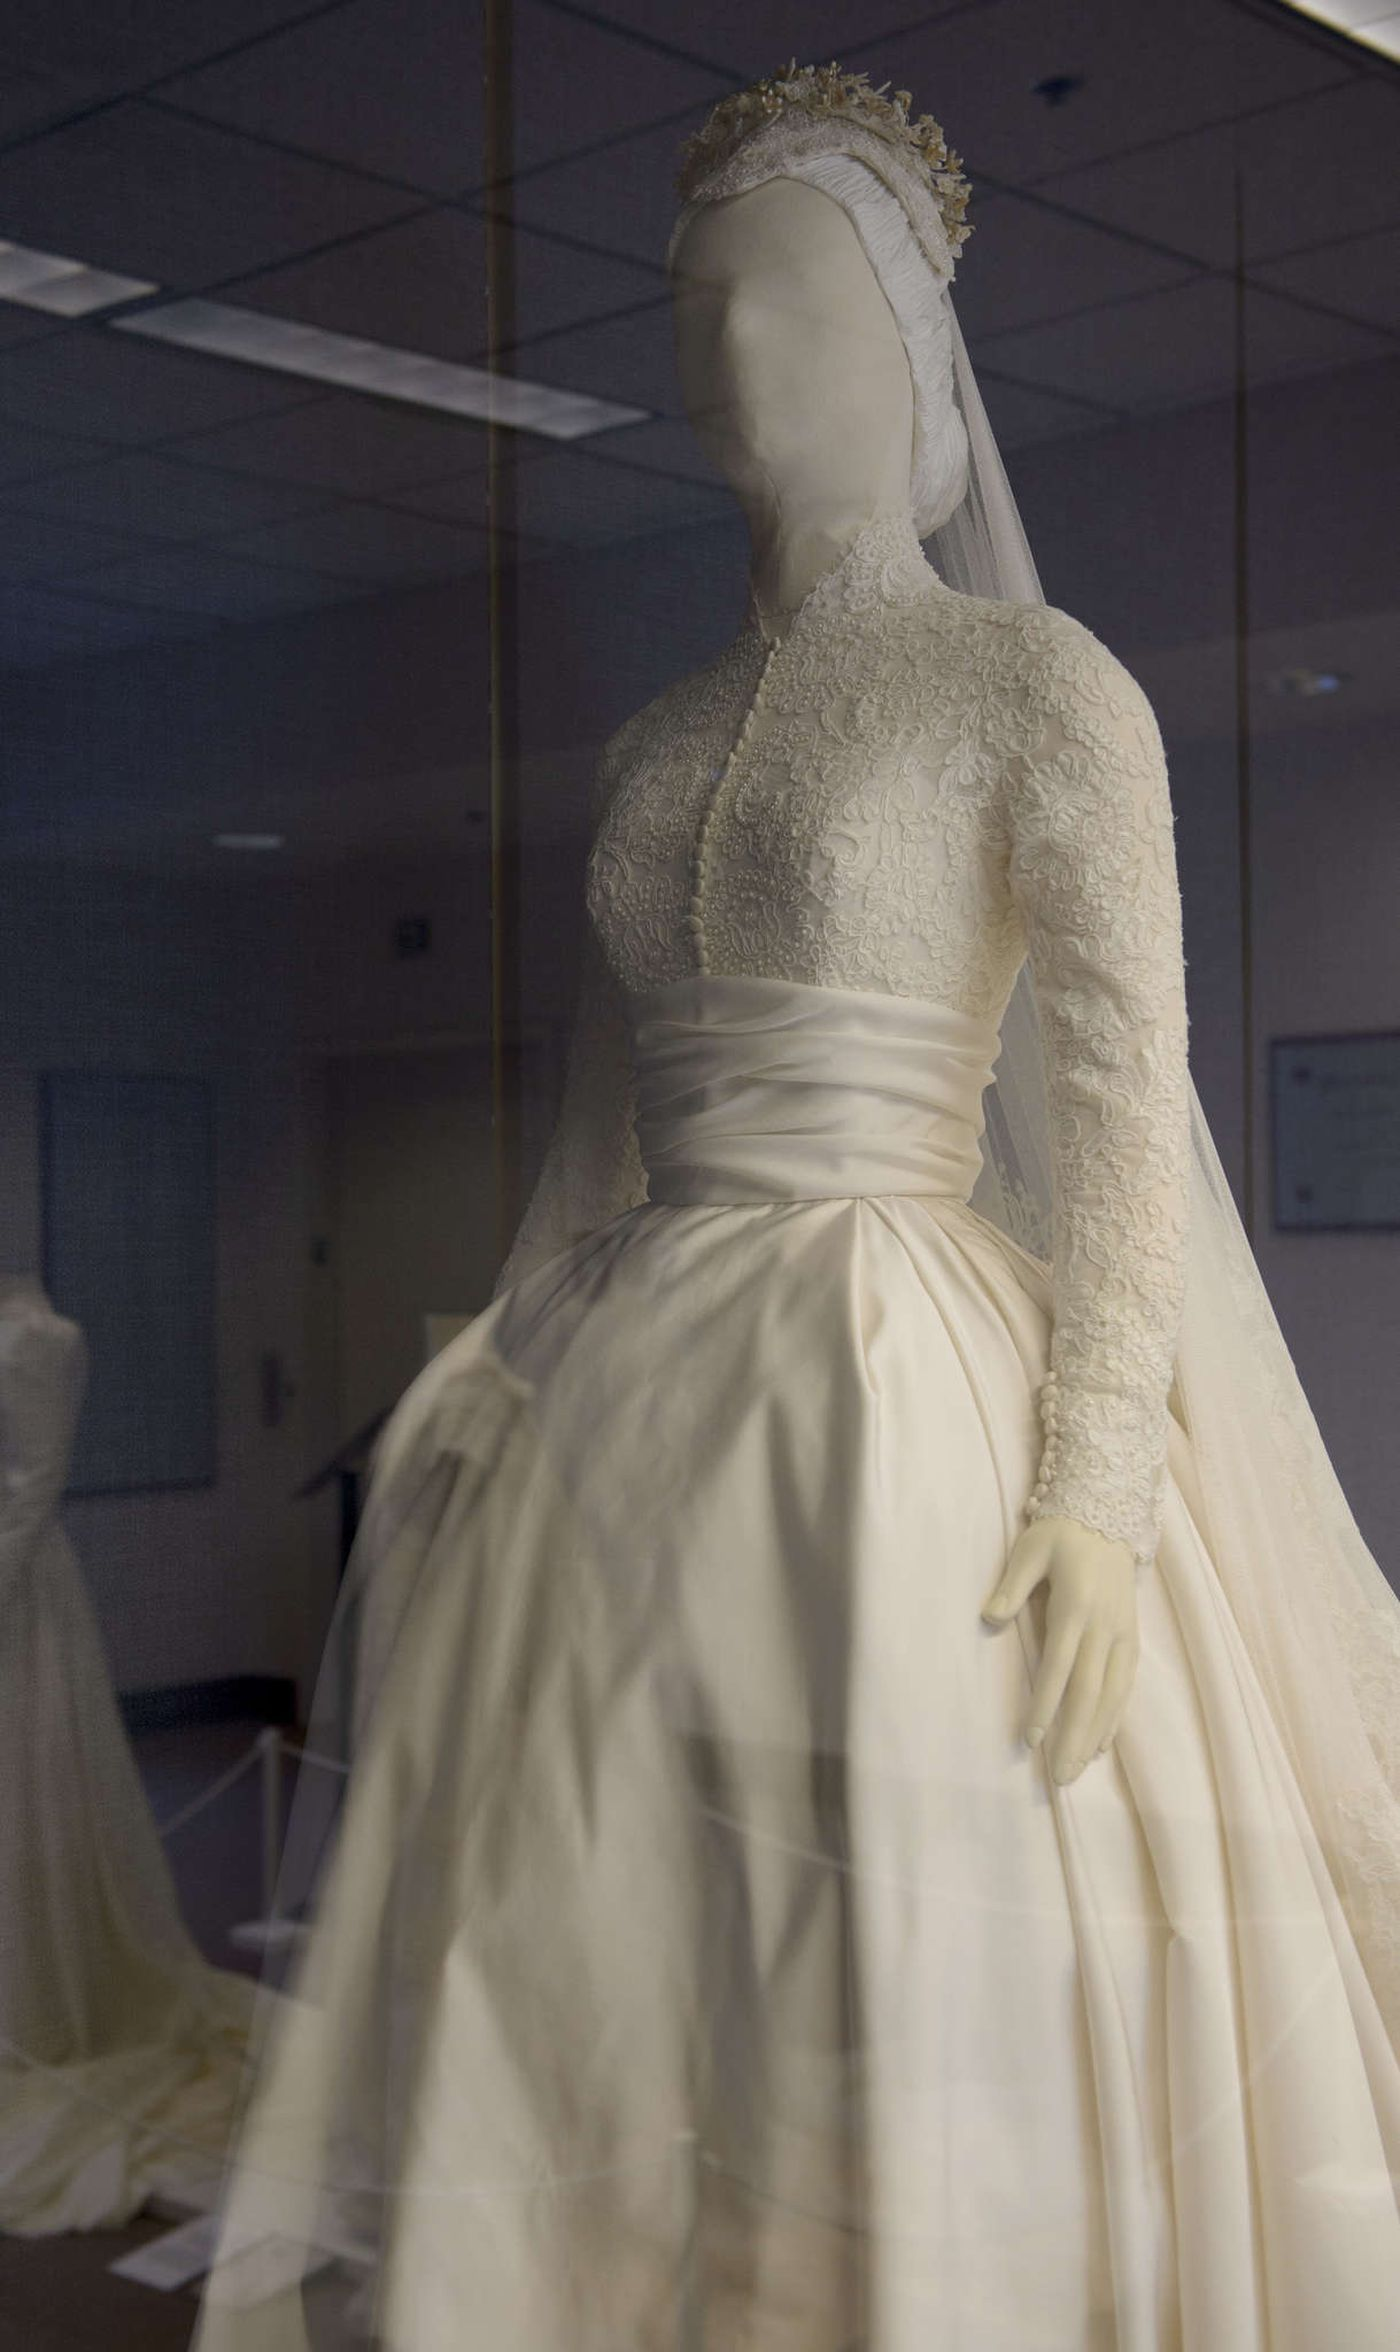 Possibly Grace Kelly's Biggest Fan Ever Despite Her Frederick County Md Address Barranca Spent 25000 To Mission The Gown That She Donated: Wedding Dress Helen Rose At Reisefeber.org